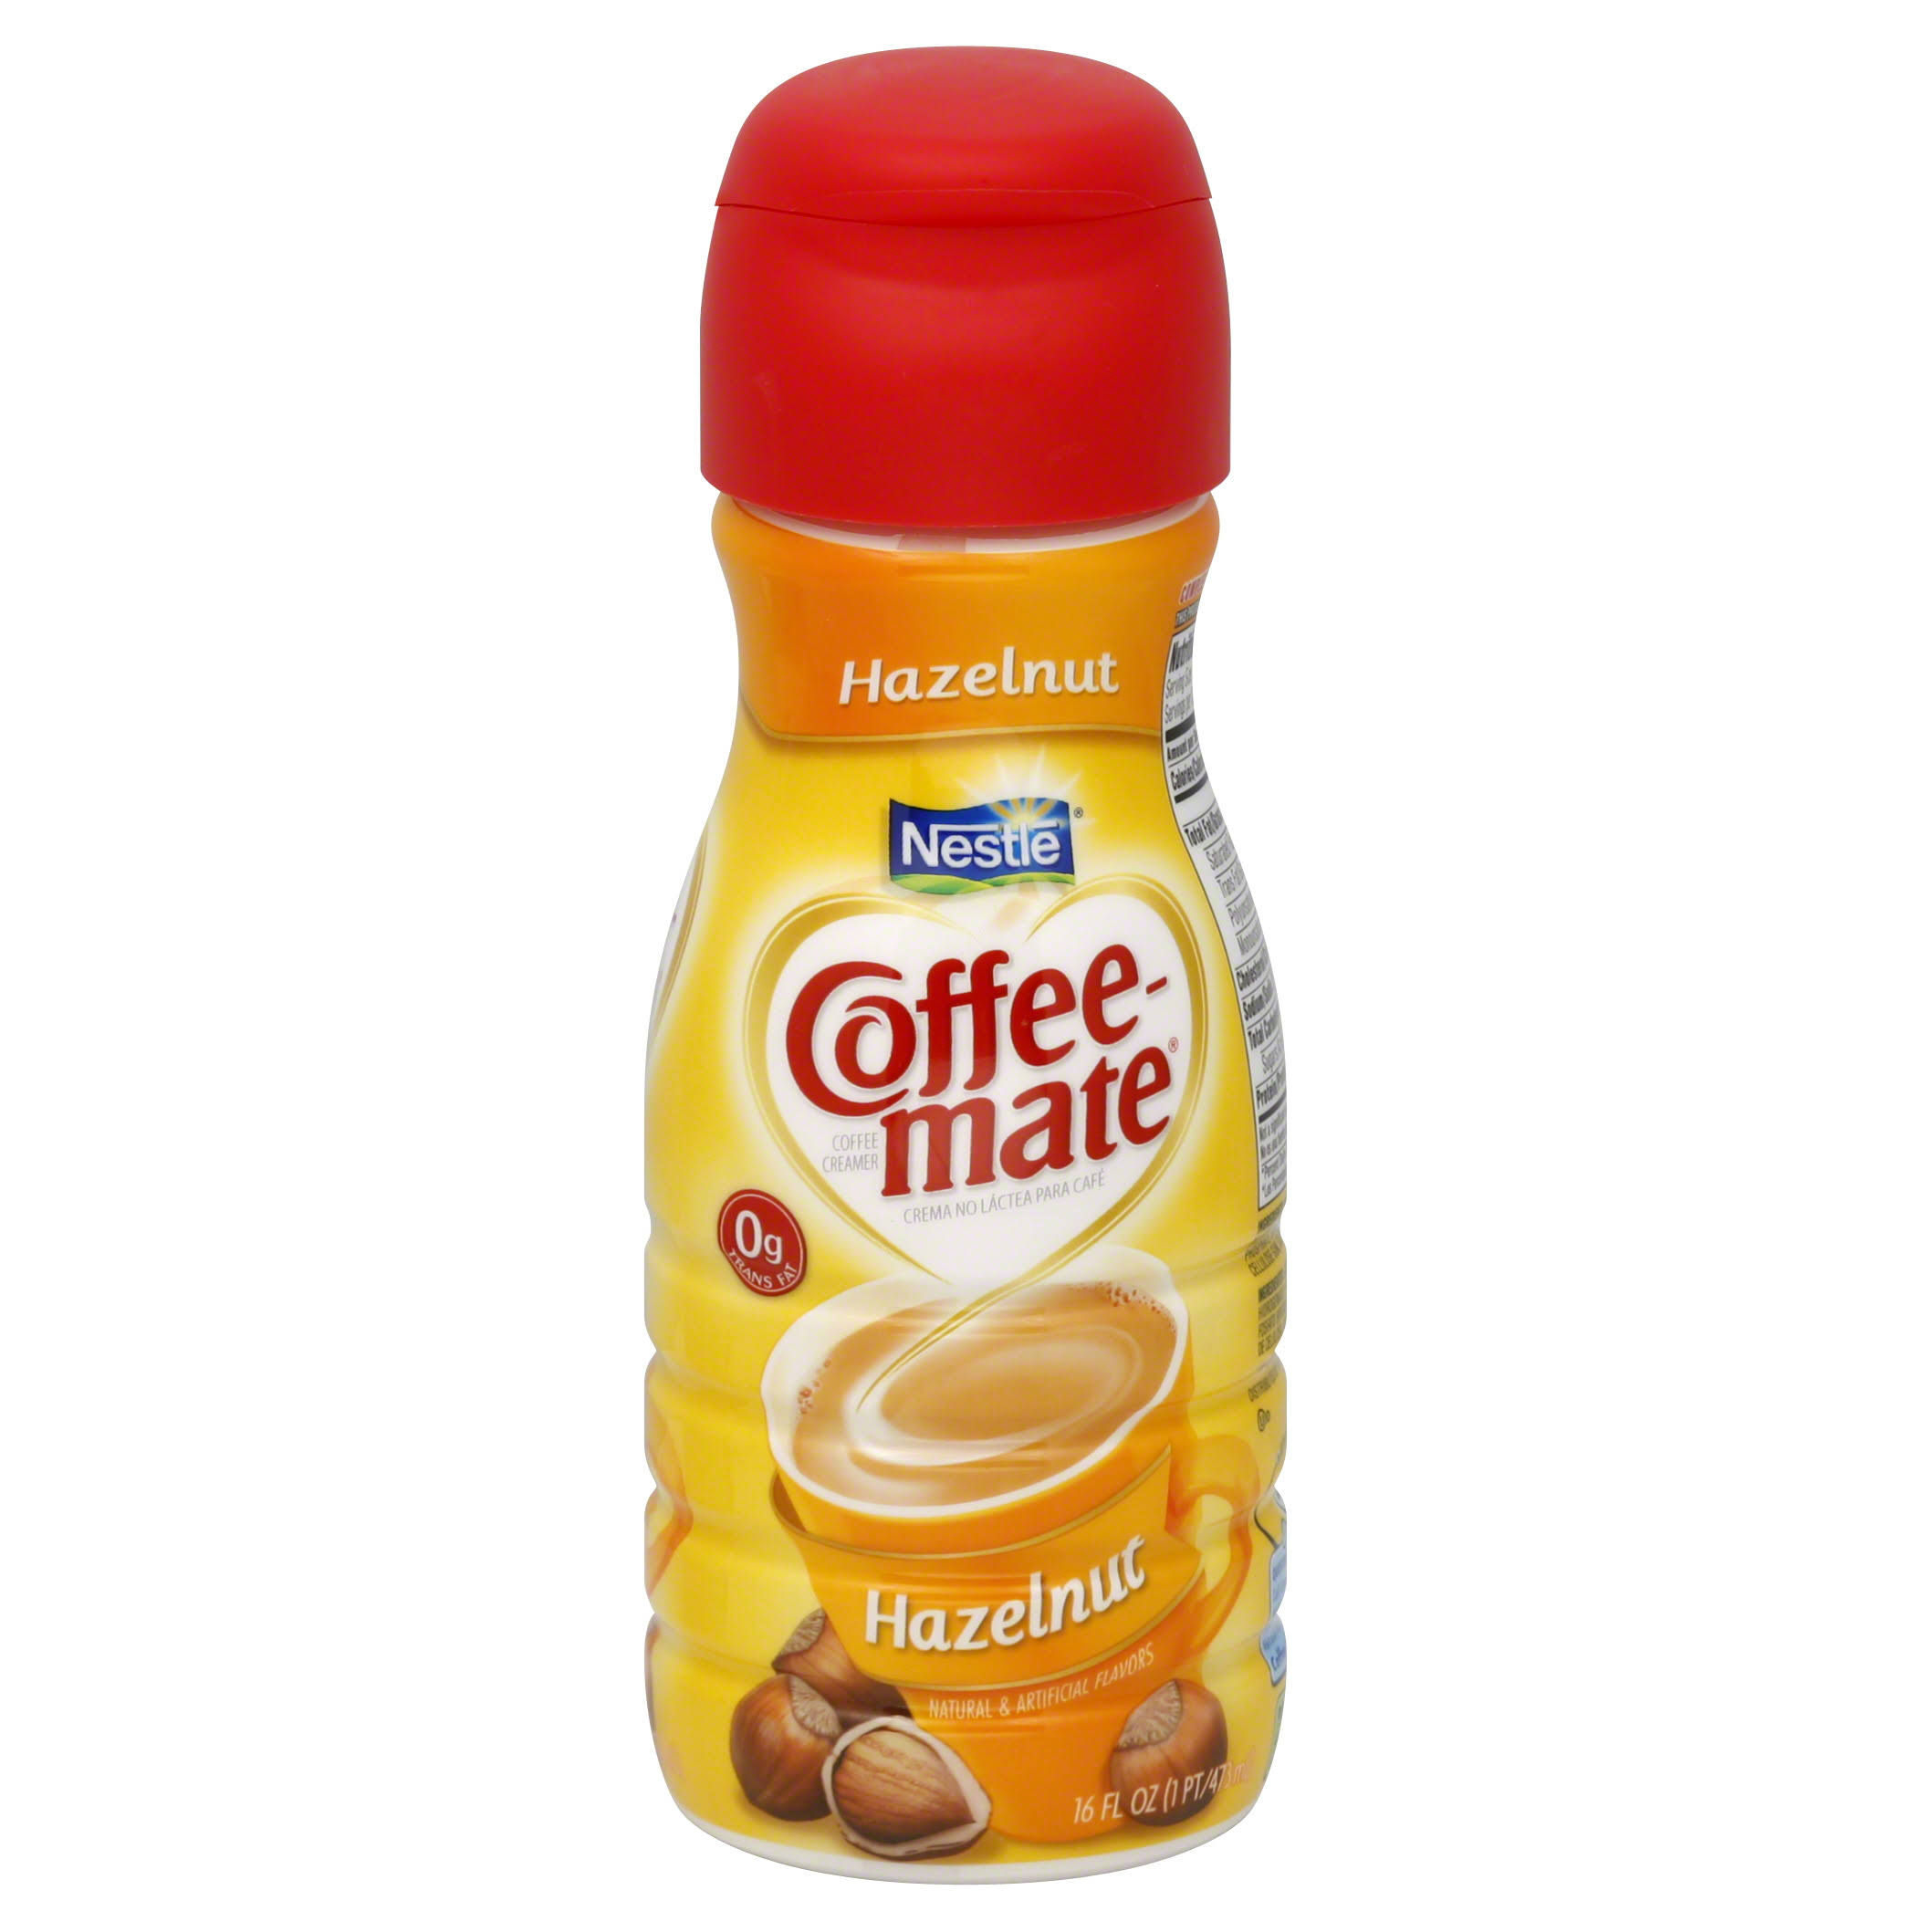 Nestle Coffee Mate Liquid Coffee Creamer - Hazelnut, 16oz